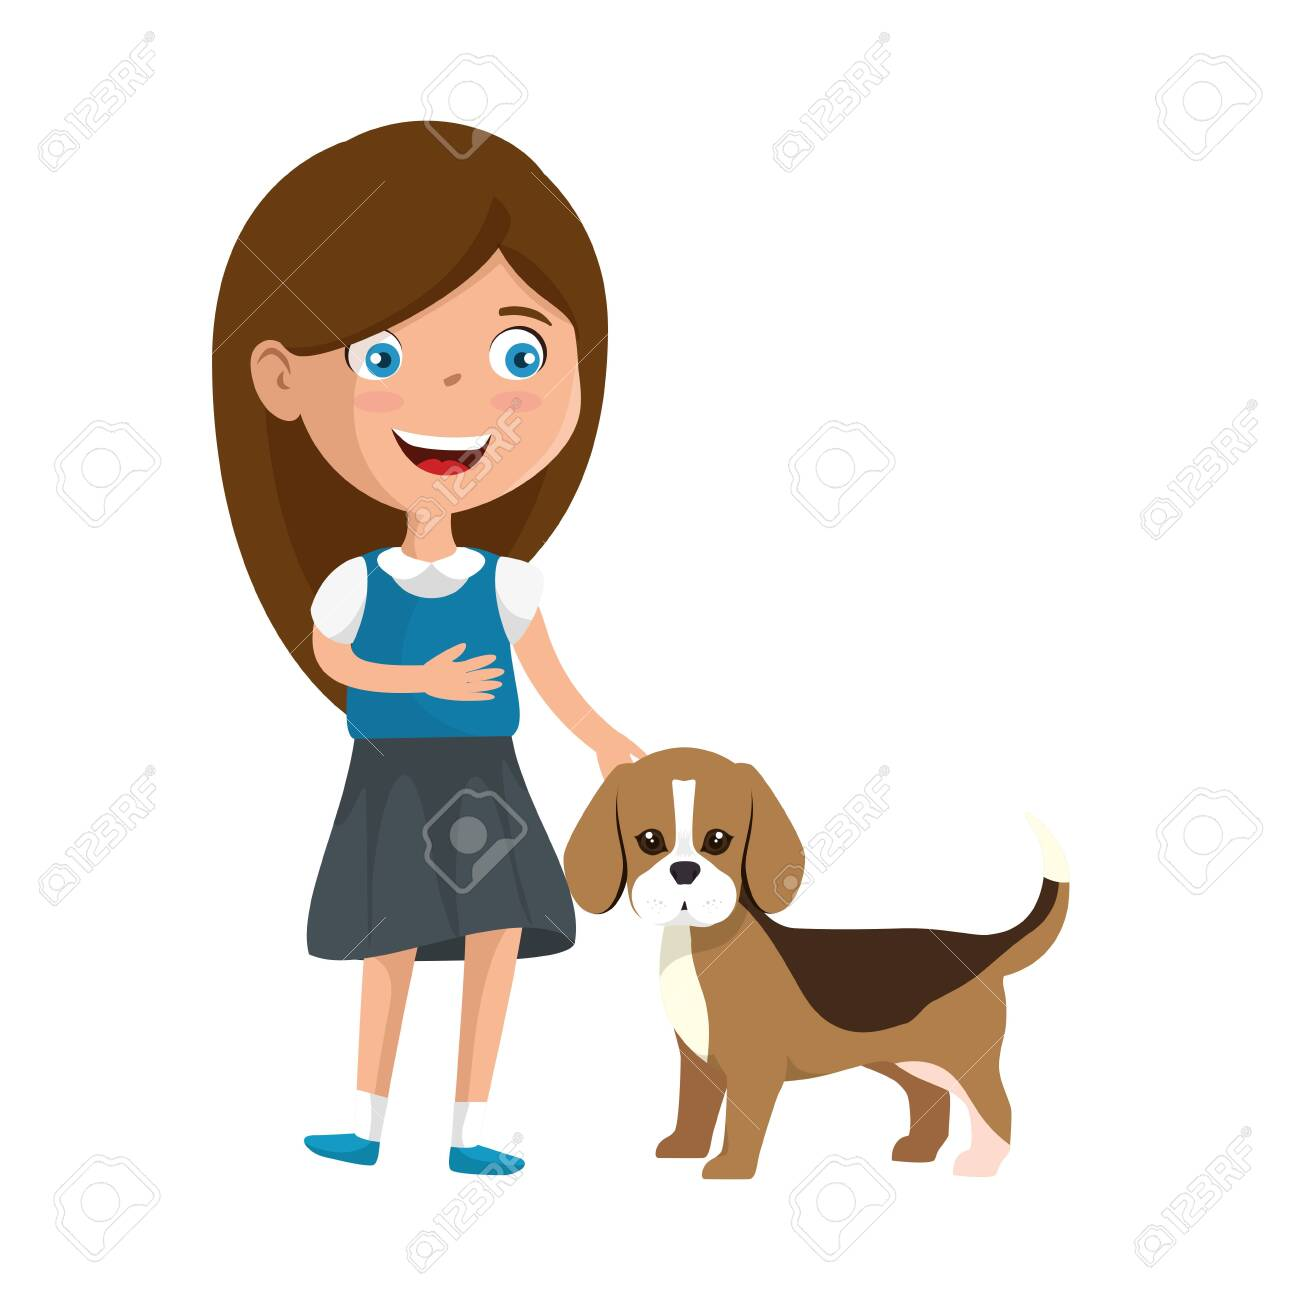 cute little girl with puppy vector illustration design - 124892649